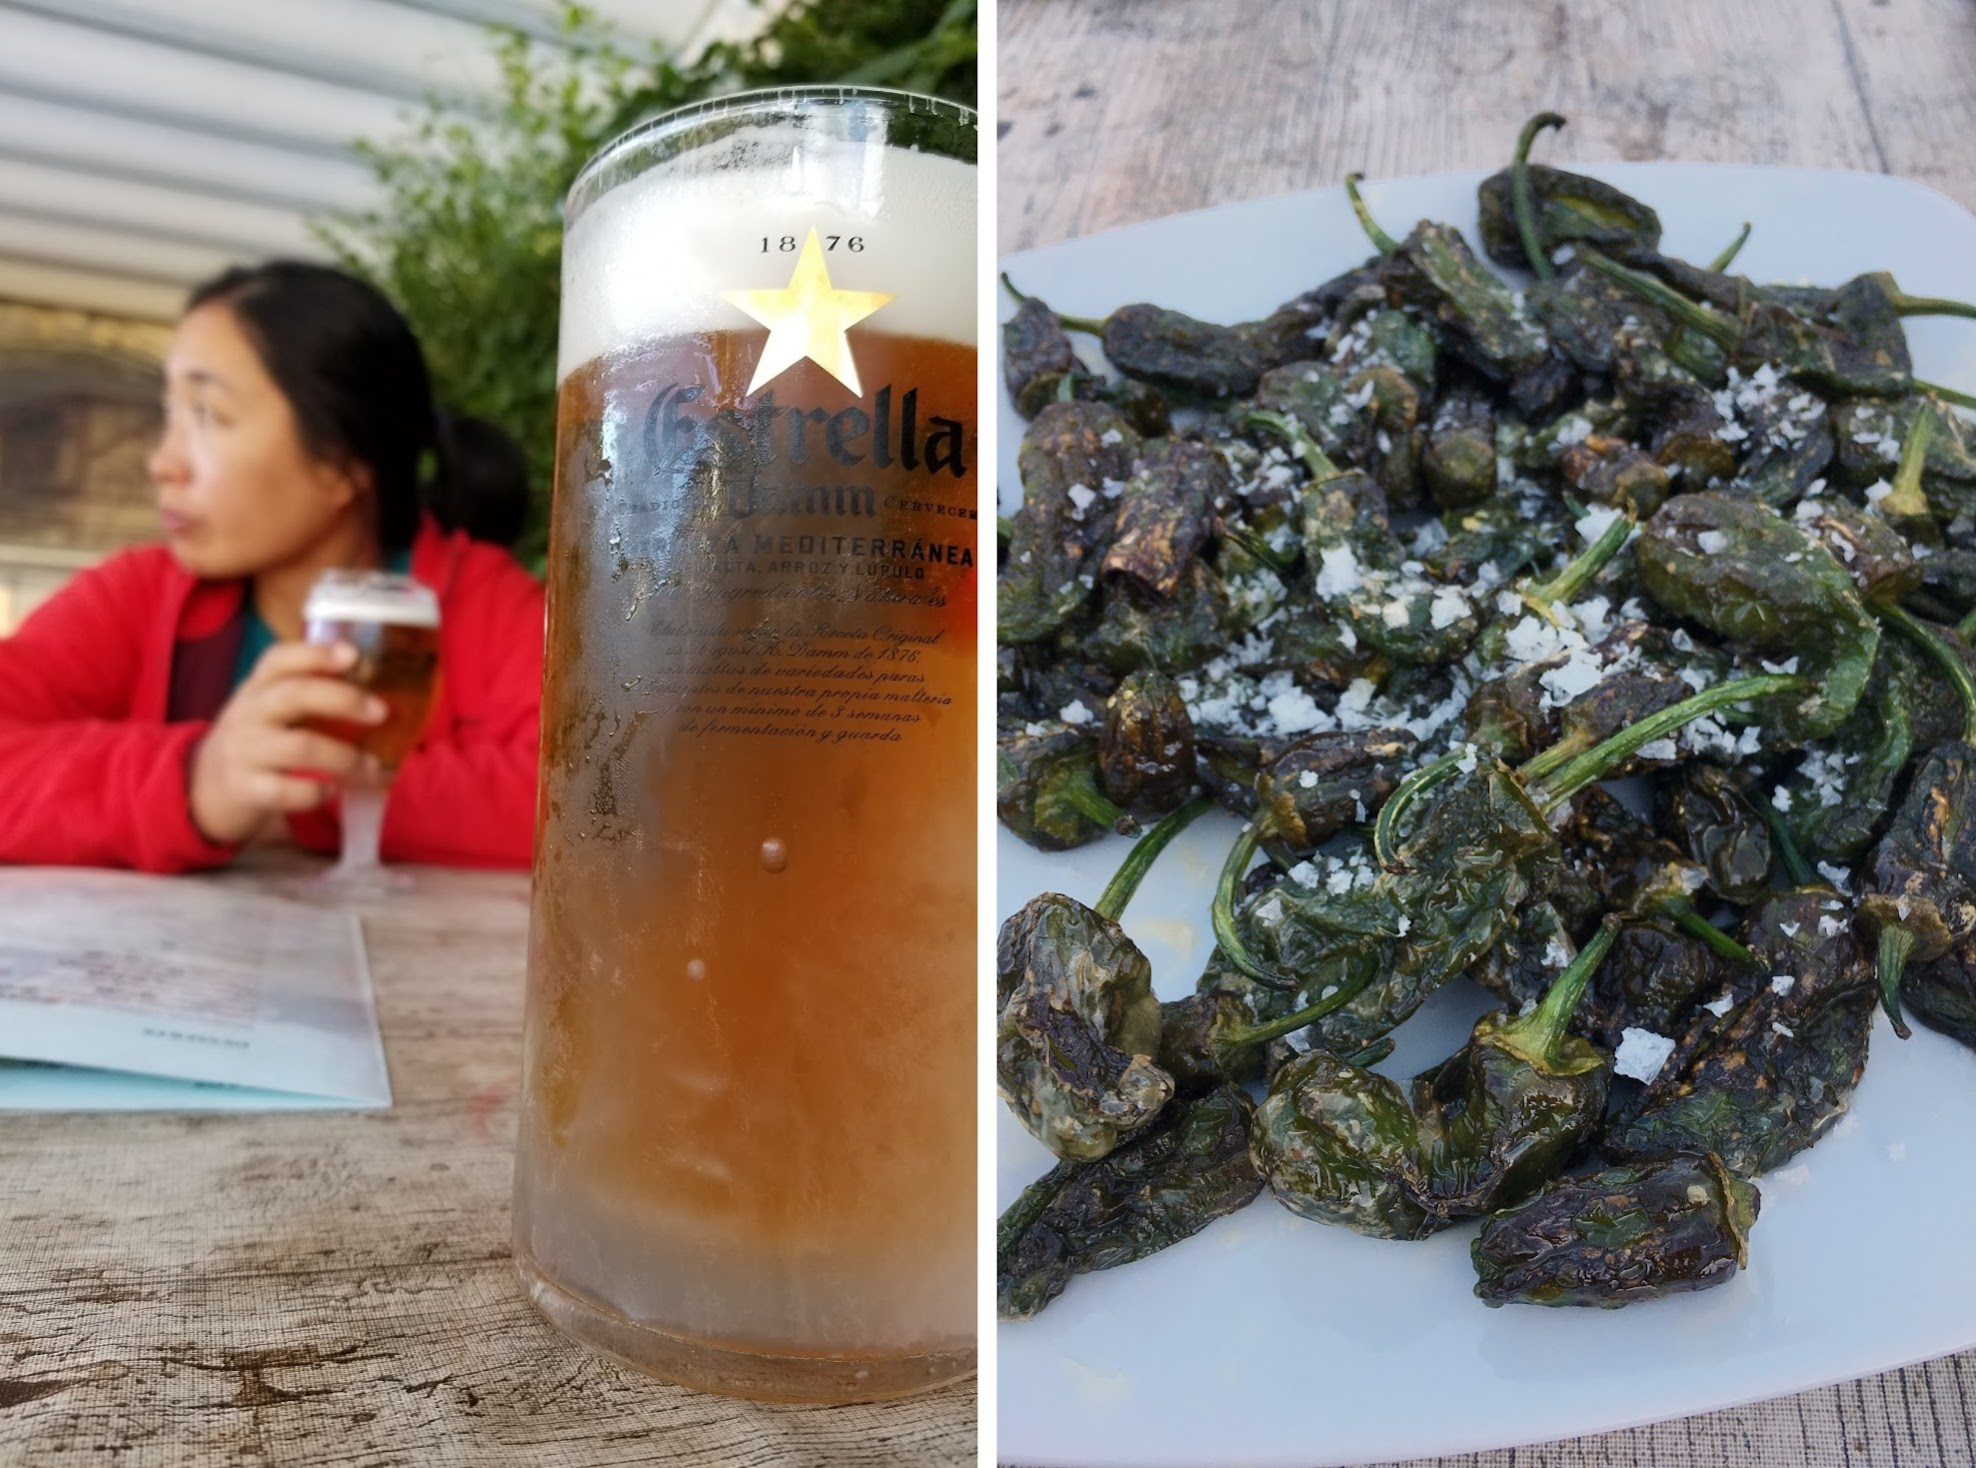 Icy-cold beer + fried padron peppers = match made in heaven post-hike sustenance